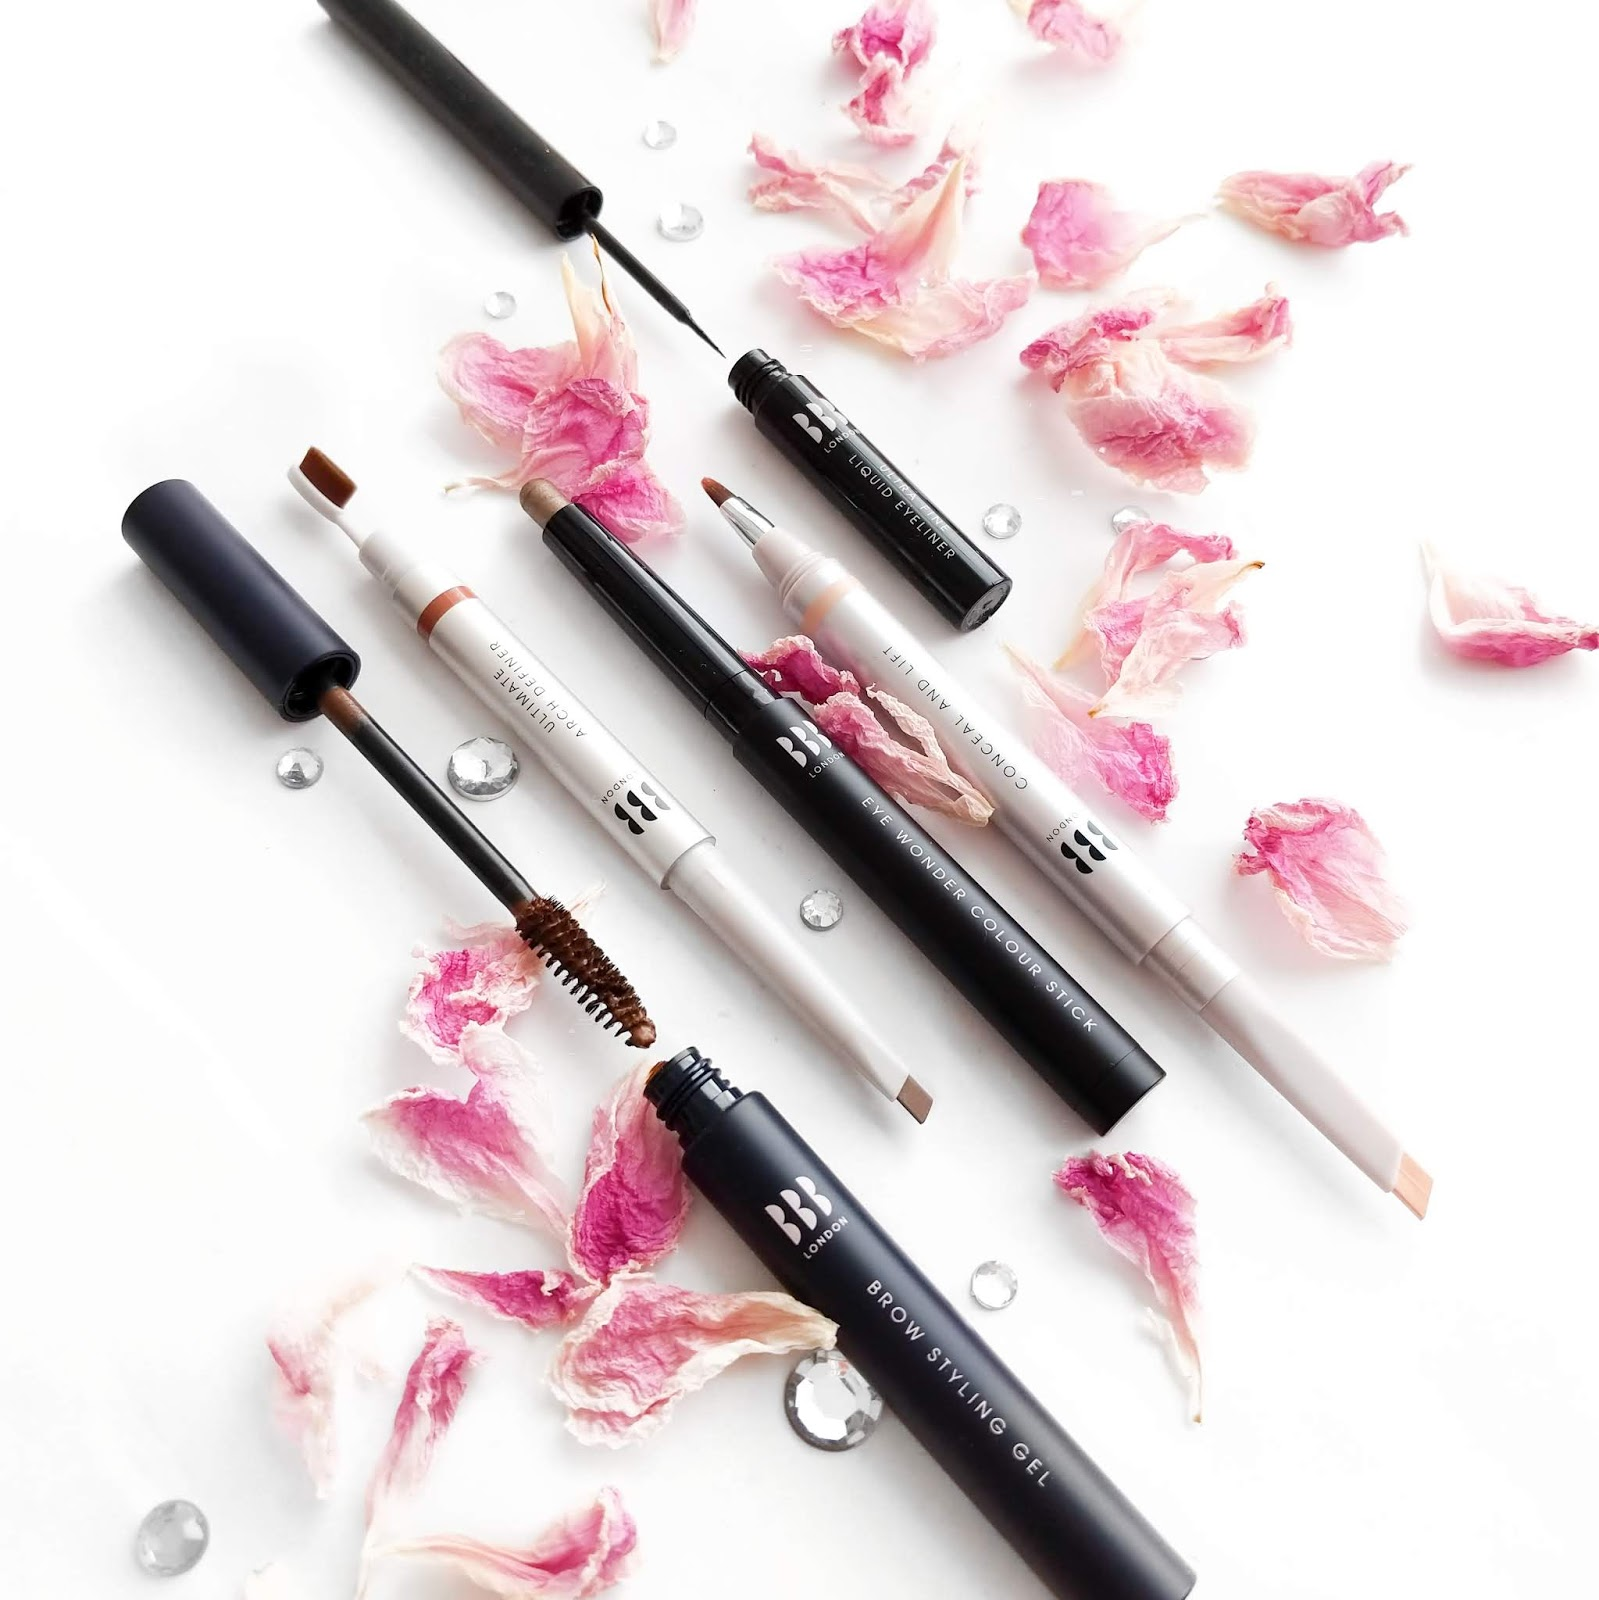 An image of the Blink Brow Bar makeup products